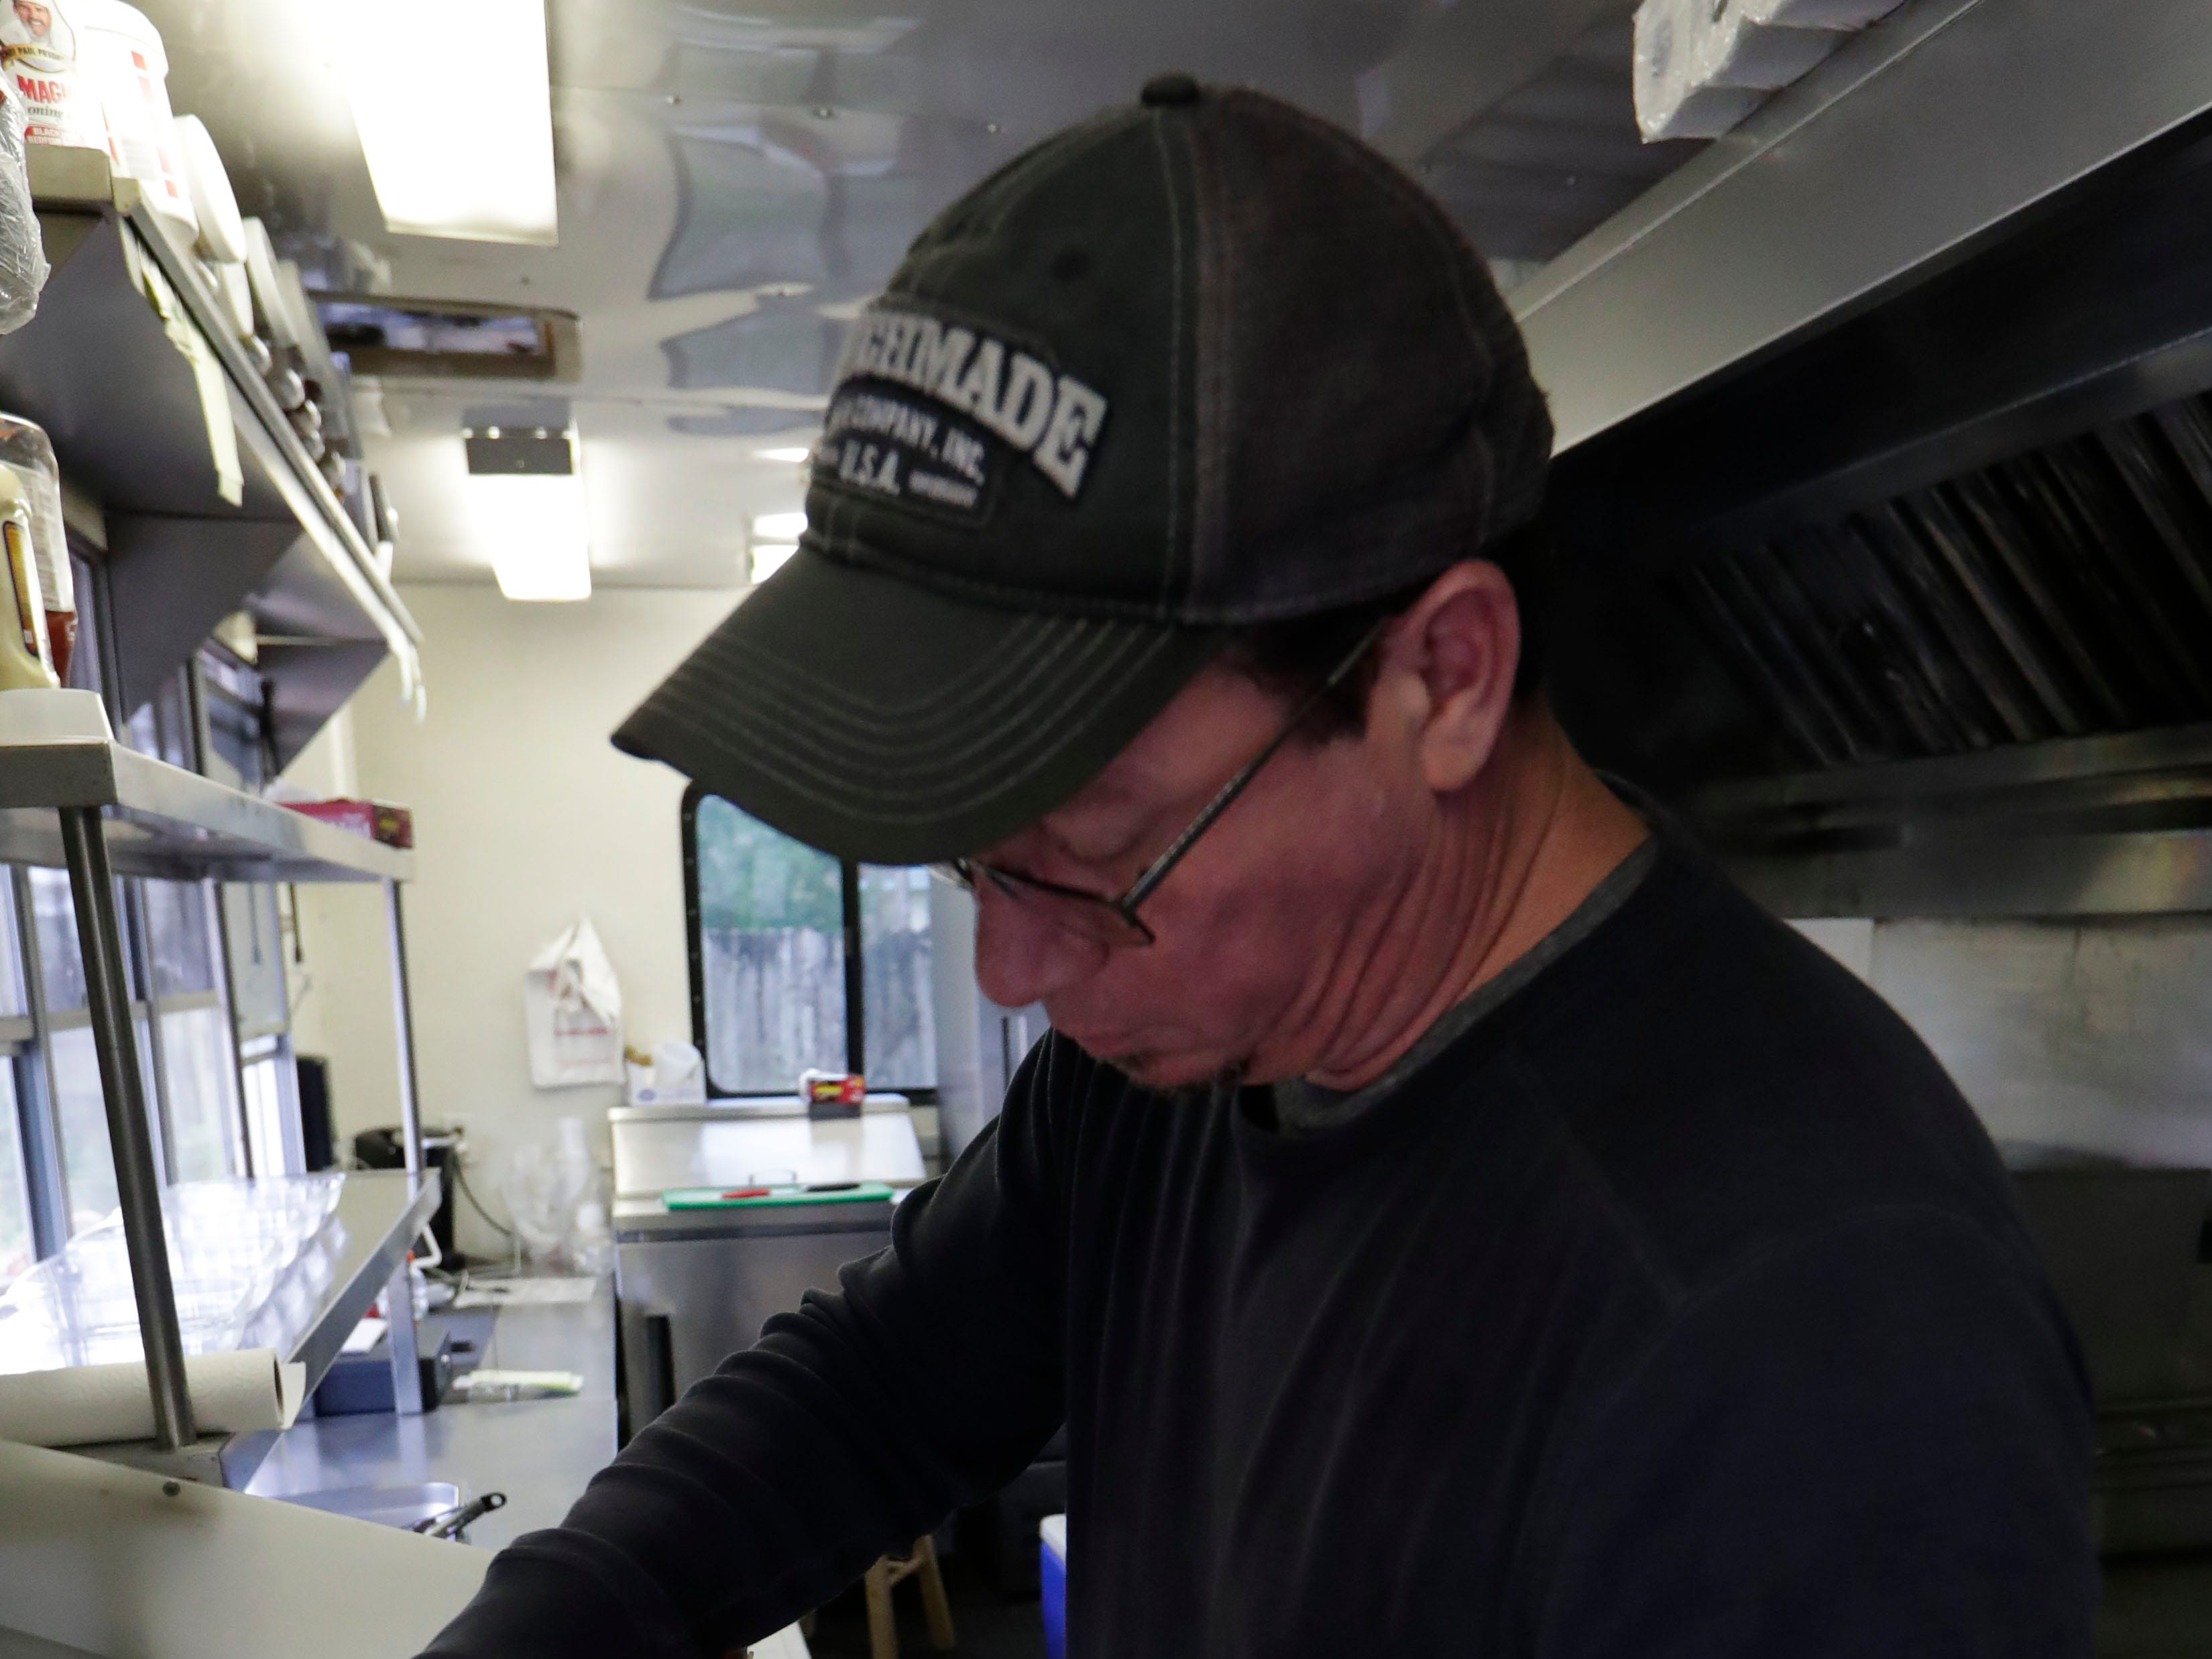 Ben Lovell, son of Leo Lovell who is the owner of Spring Creek Restaurant food truck located in Crawfordville, Fla., seasons shrimp before cooking them for a customer, Friday, Feb. 1, 2019.